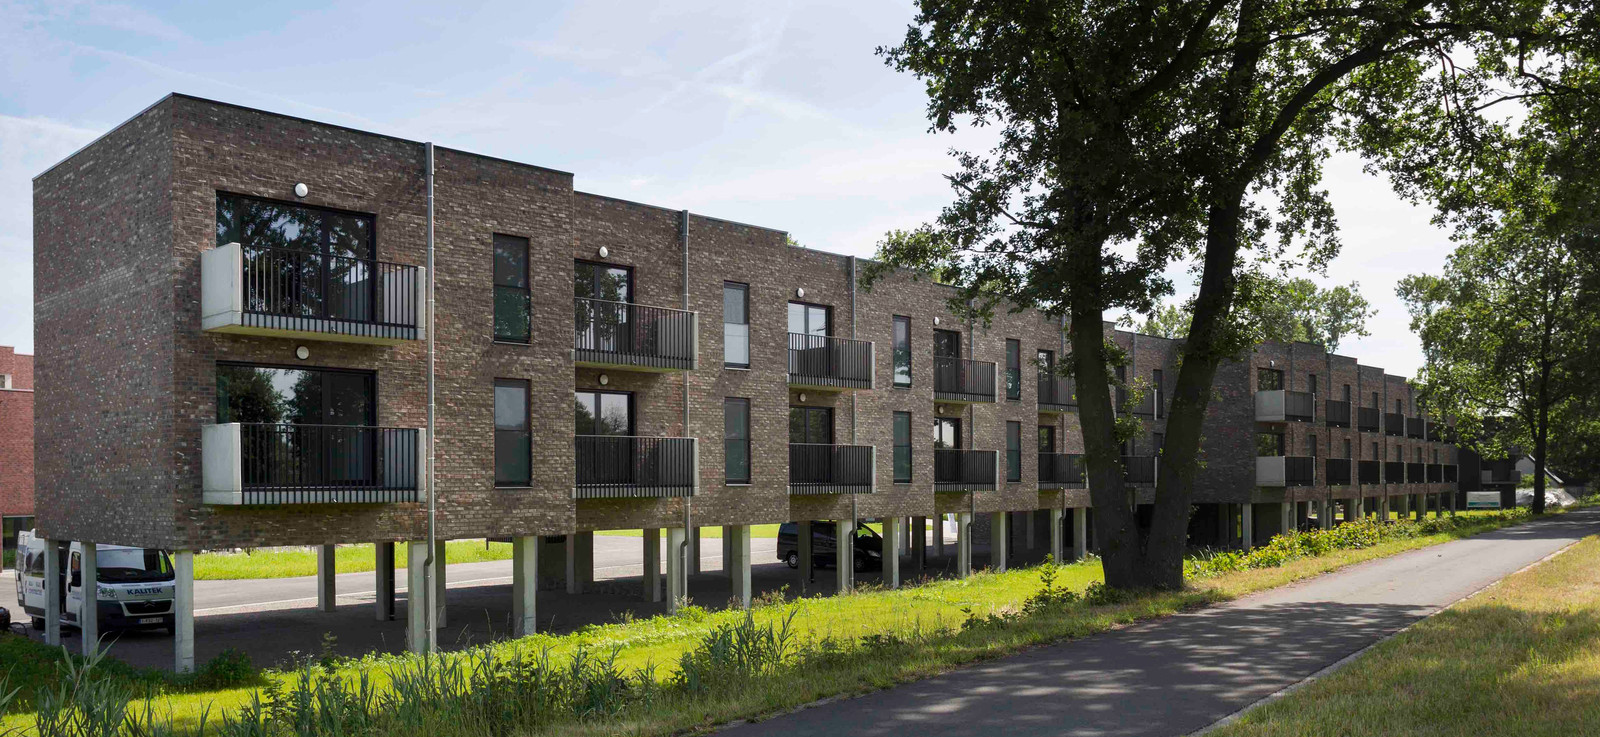 Duurzame hedendaagse architectuur archipro architecten for Hedendaagse architecten